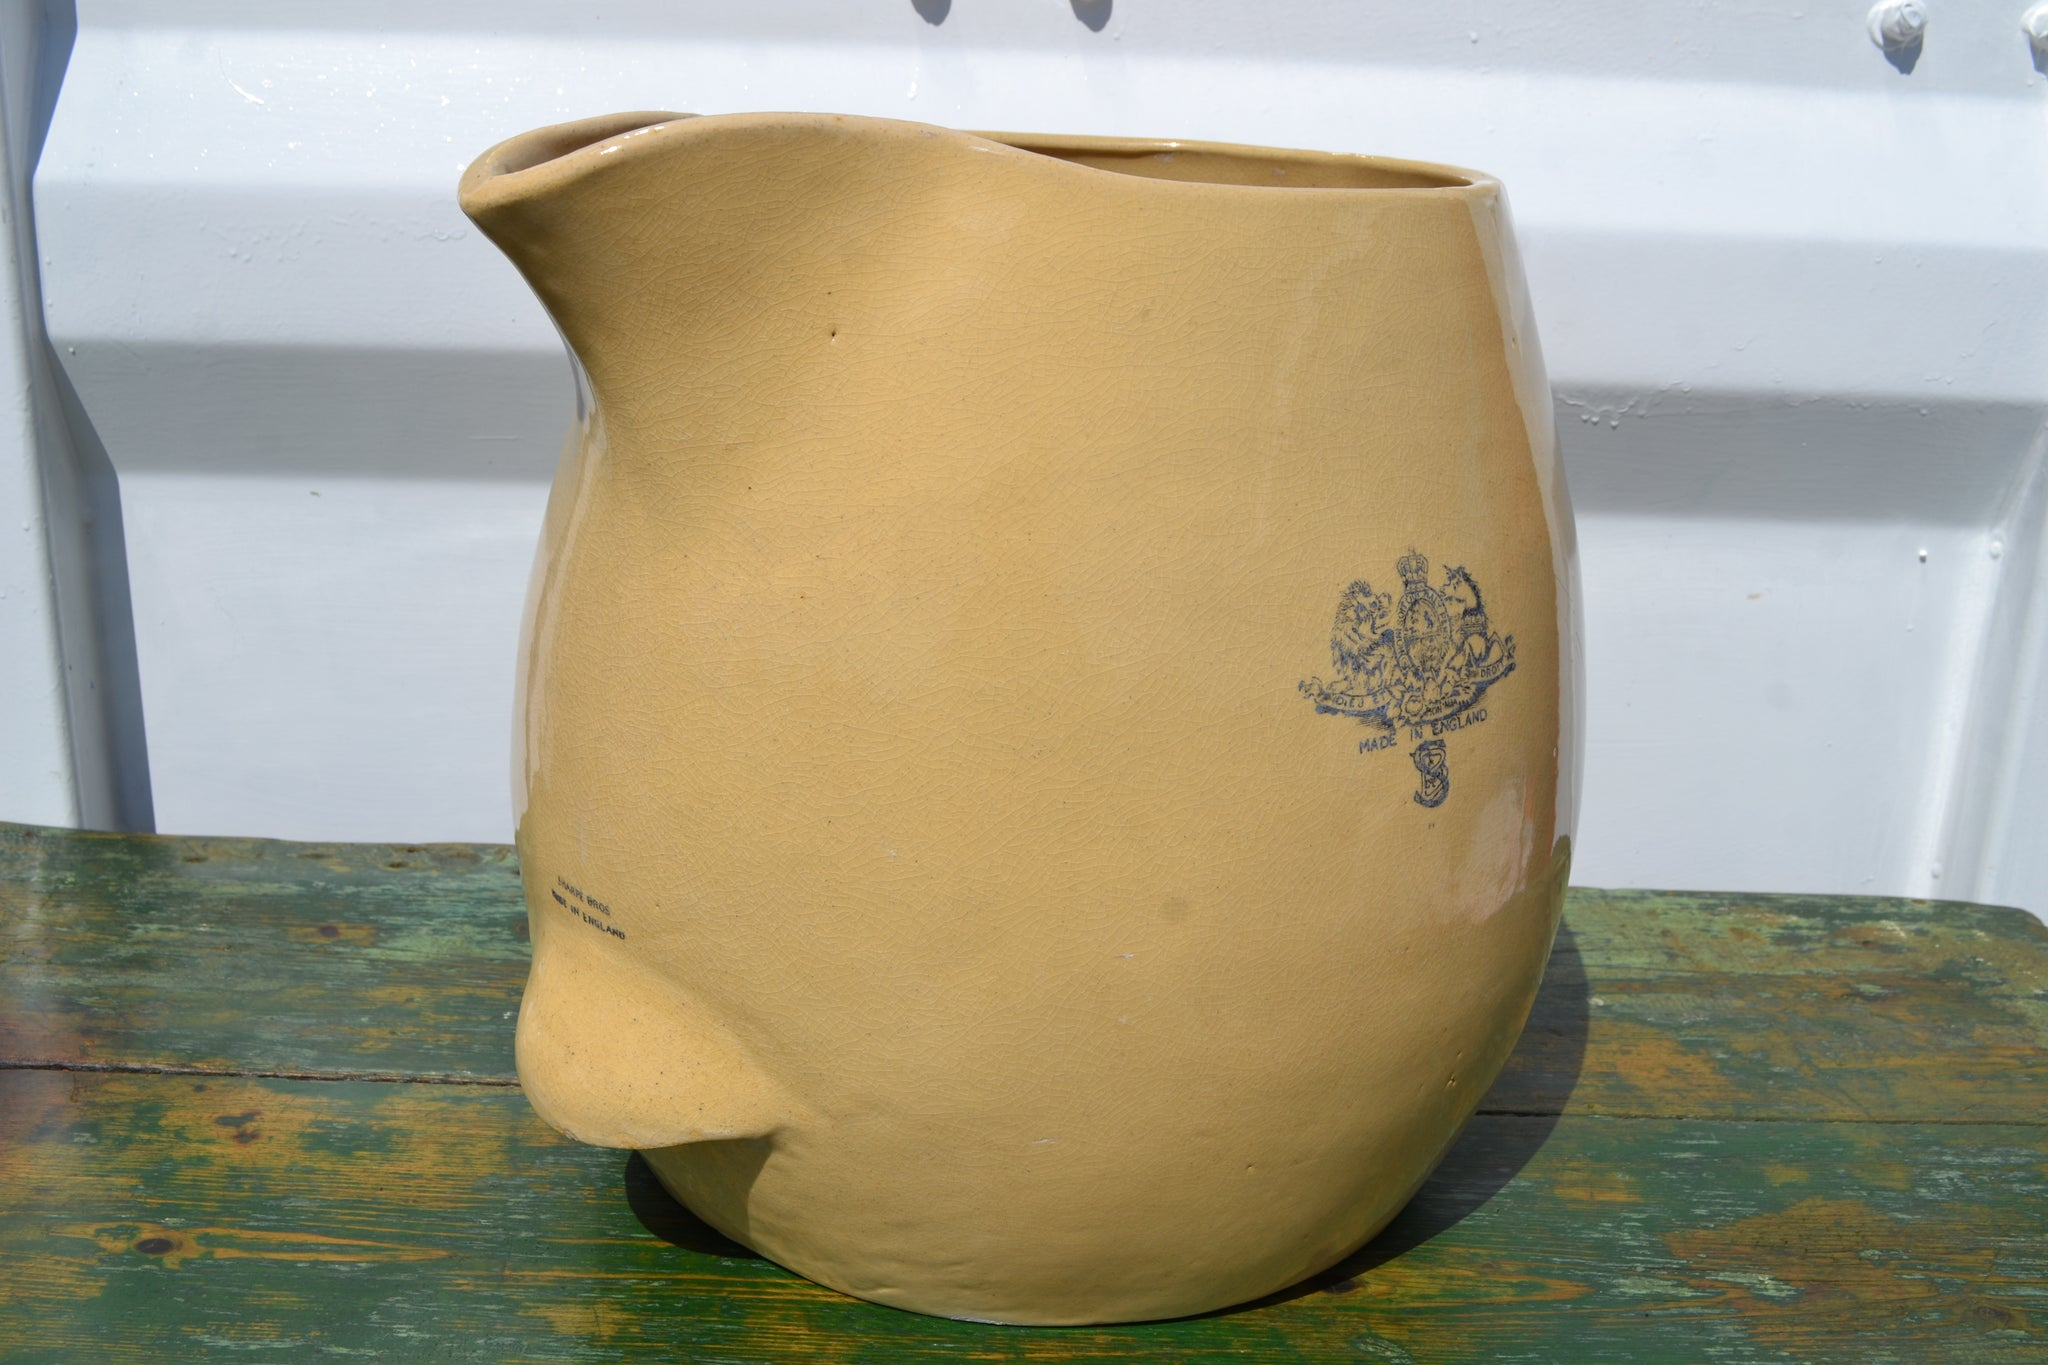 A GIANT Sharpe Bro's pottery Jug